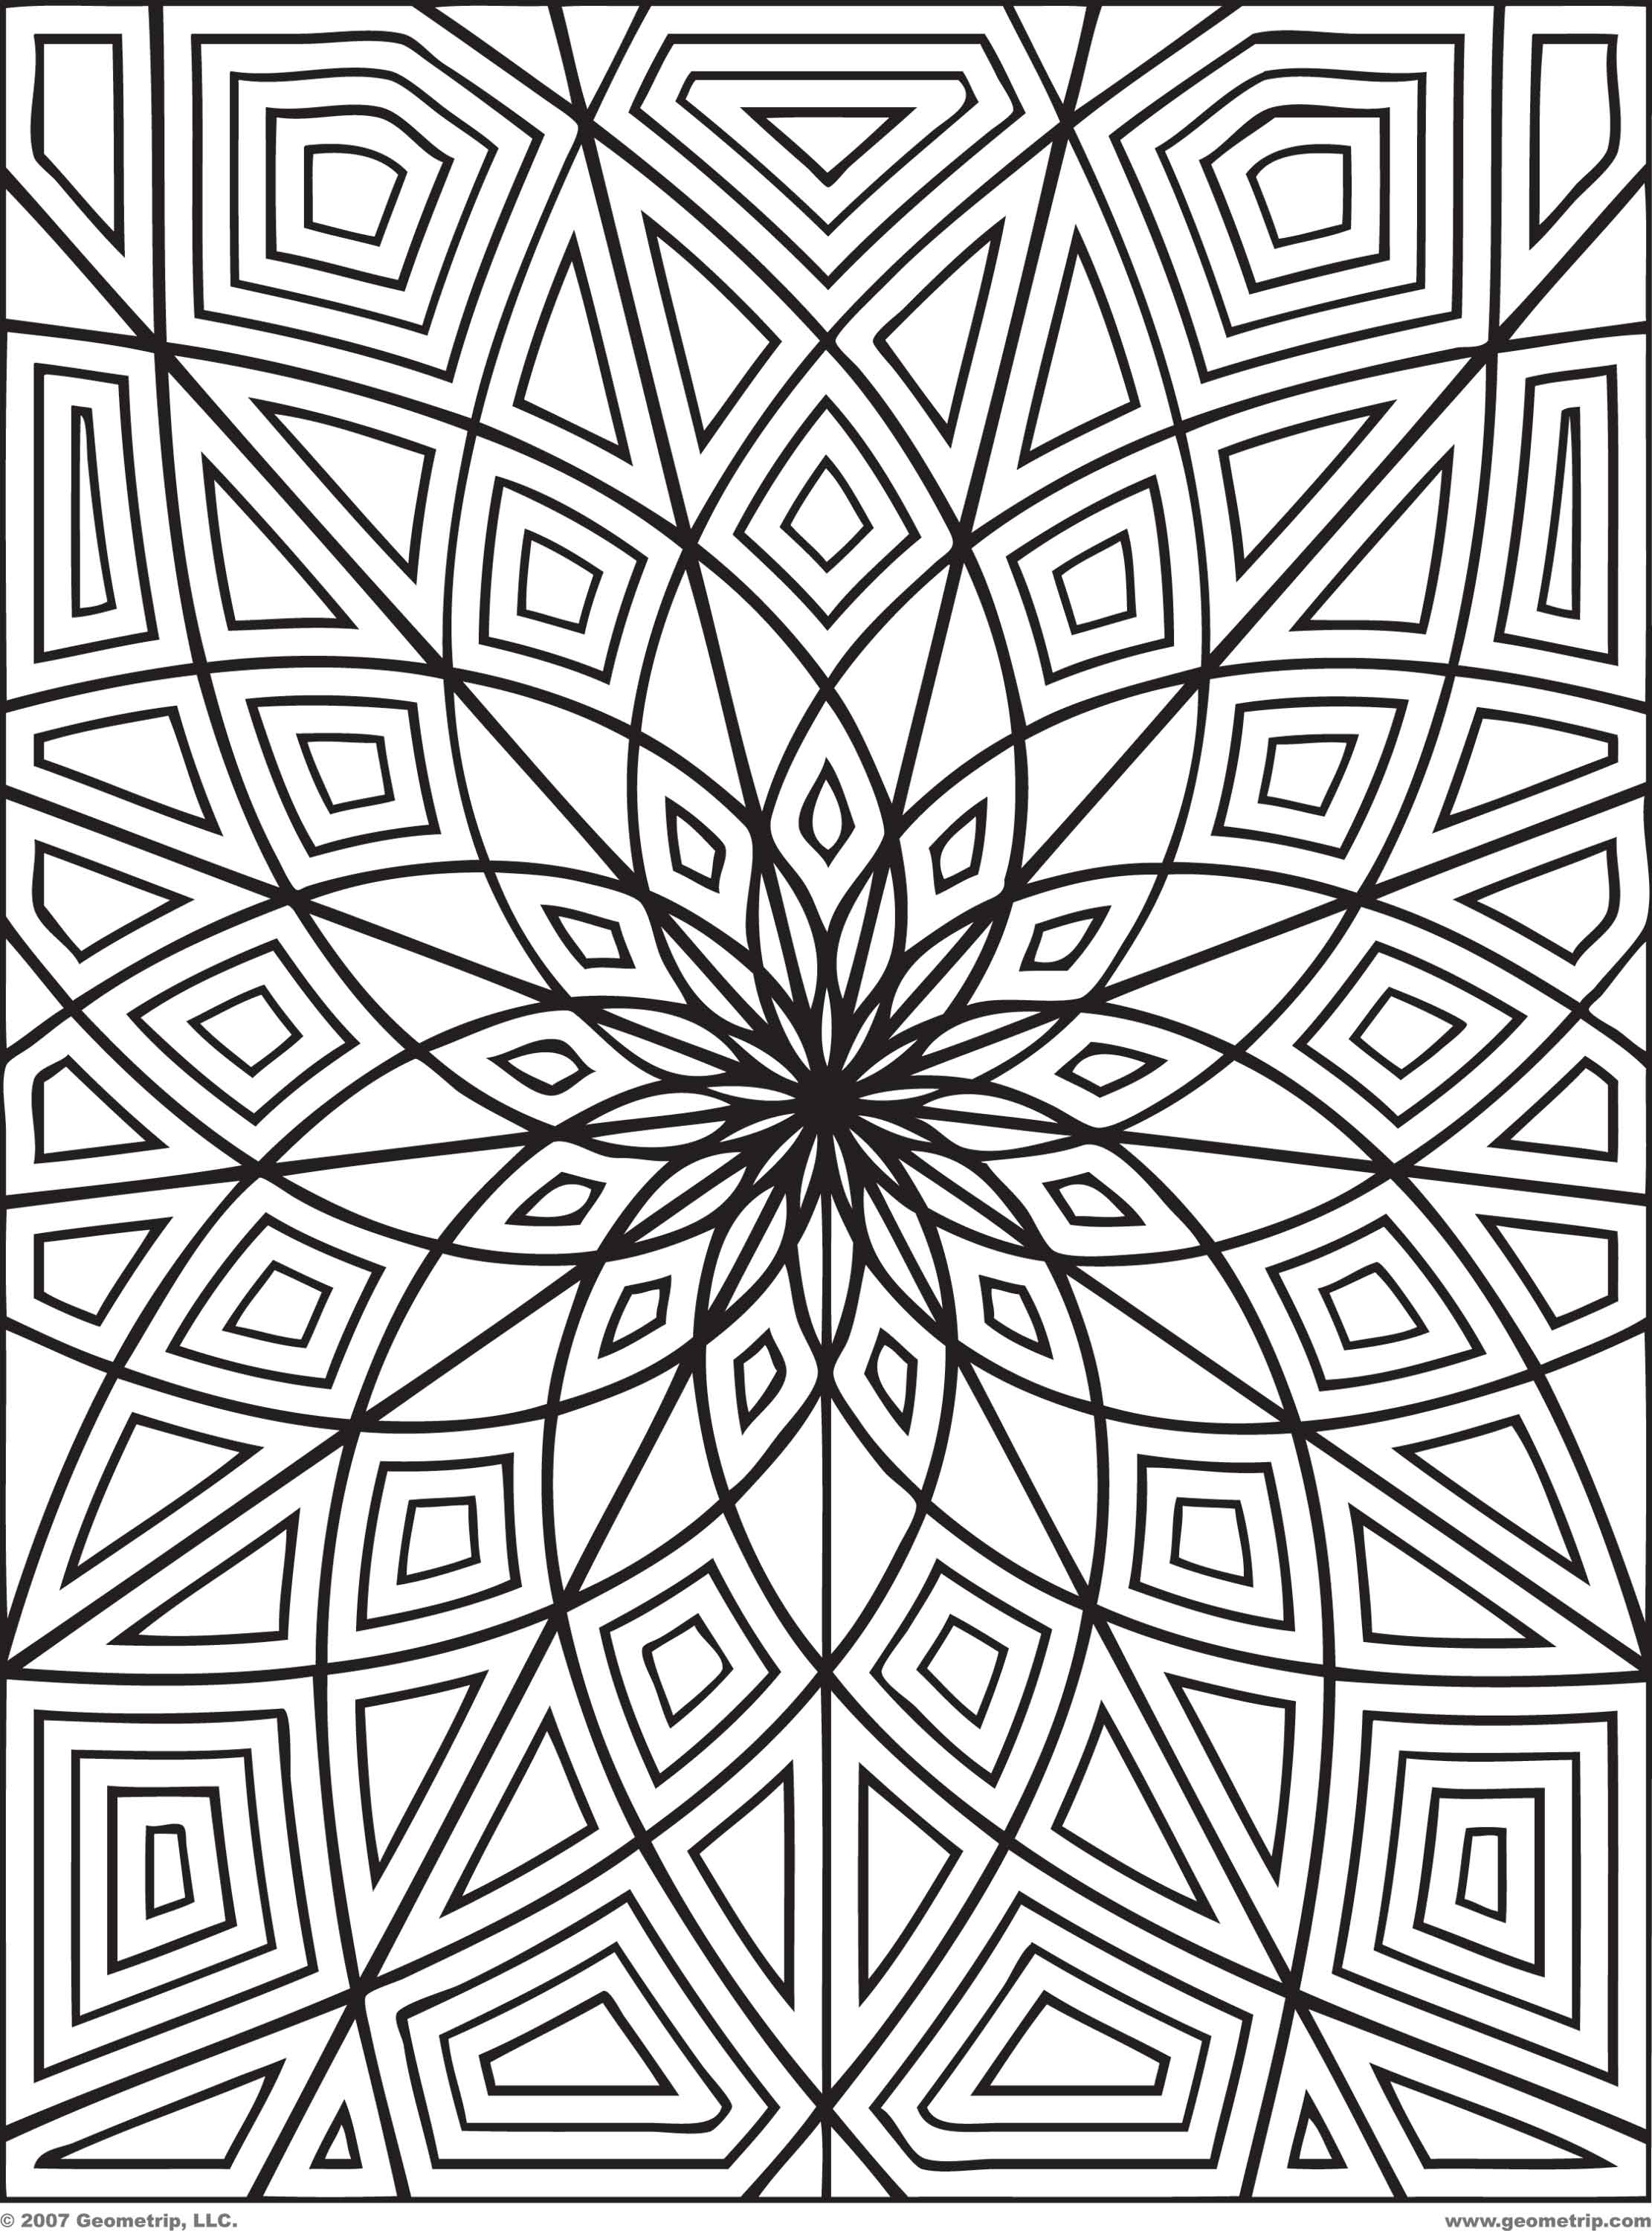 High quality coloring pages for adults - Coloring Pages Geometric Art High Quality Coloring Pages